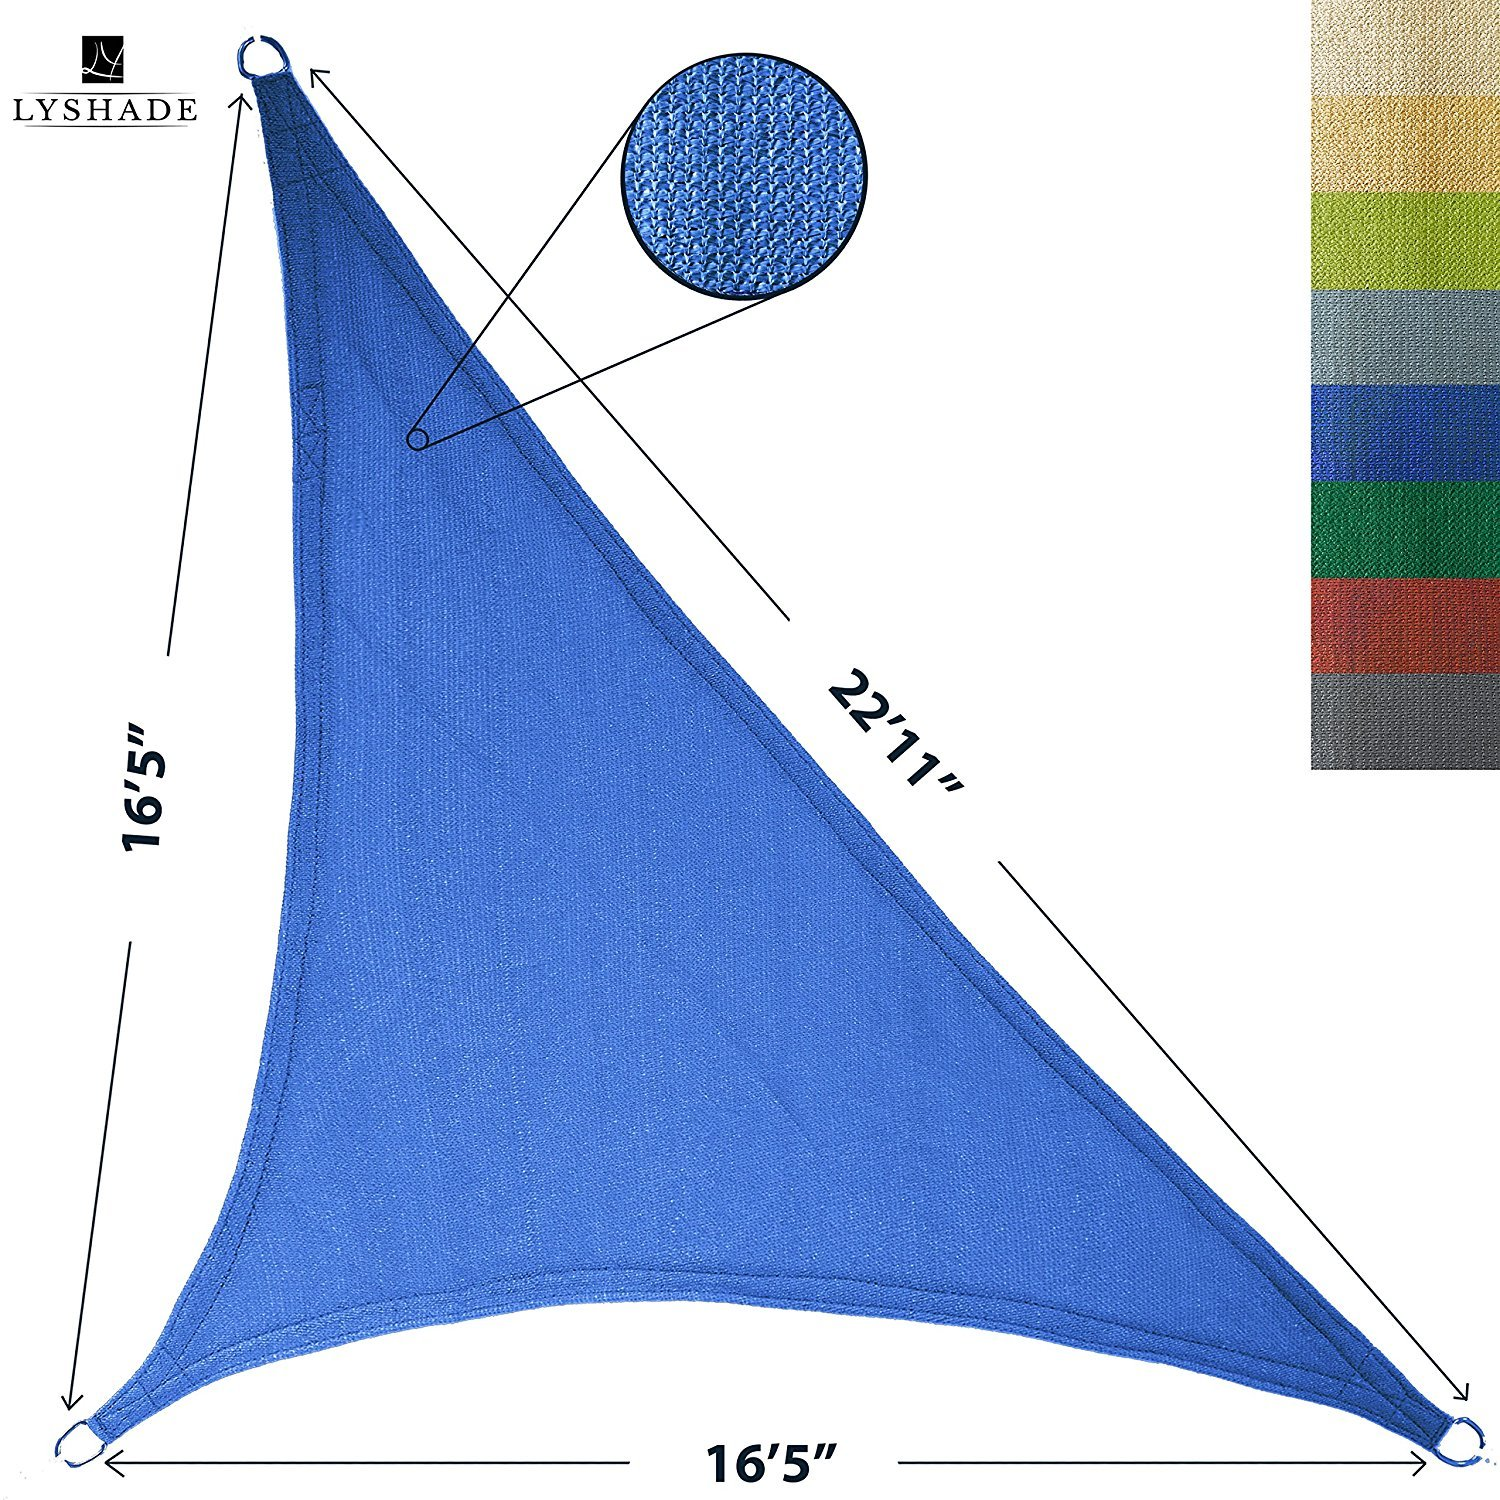 LyShade 12' x 12' x 17' Right Triangle Sun Shade Sail Canopy (Blue) - UV Block for Patio and Outdoor by LyShade